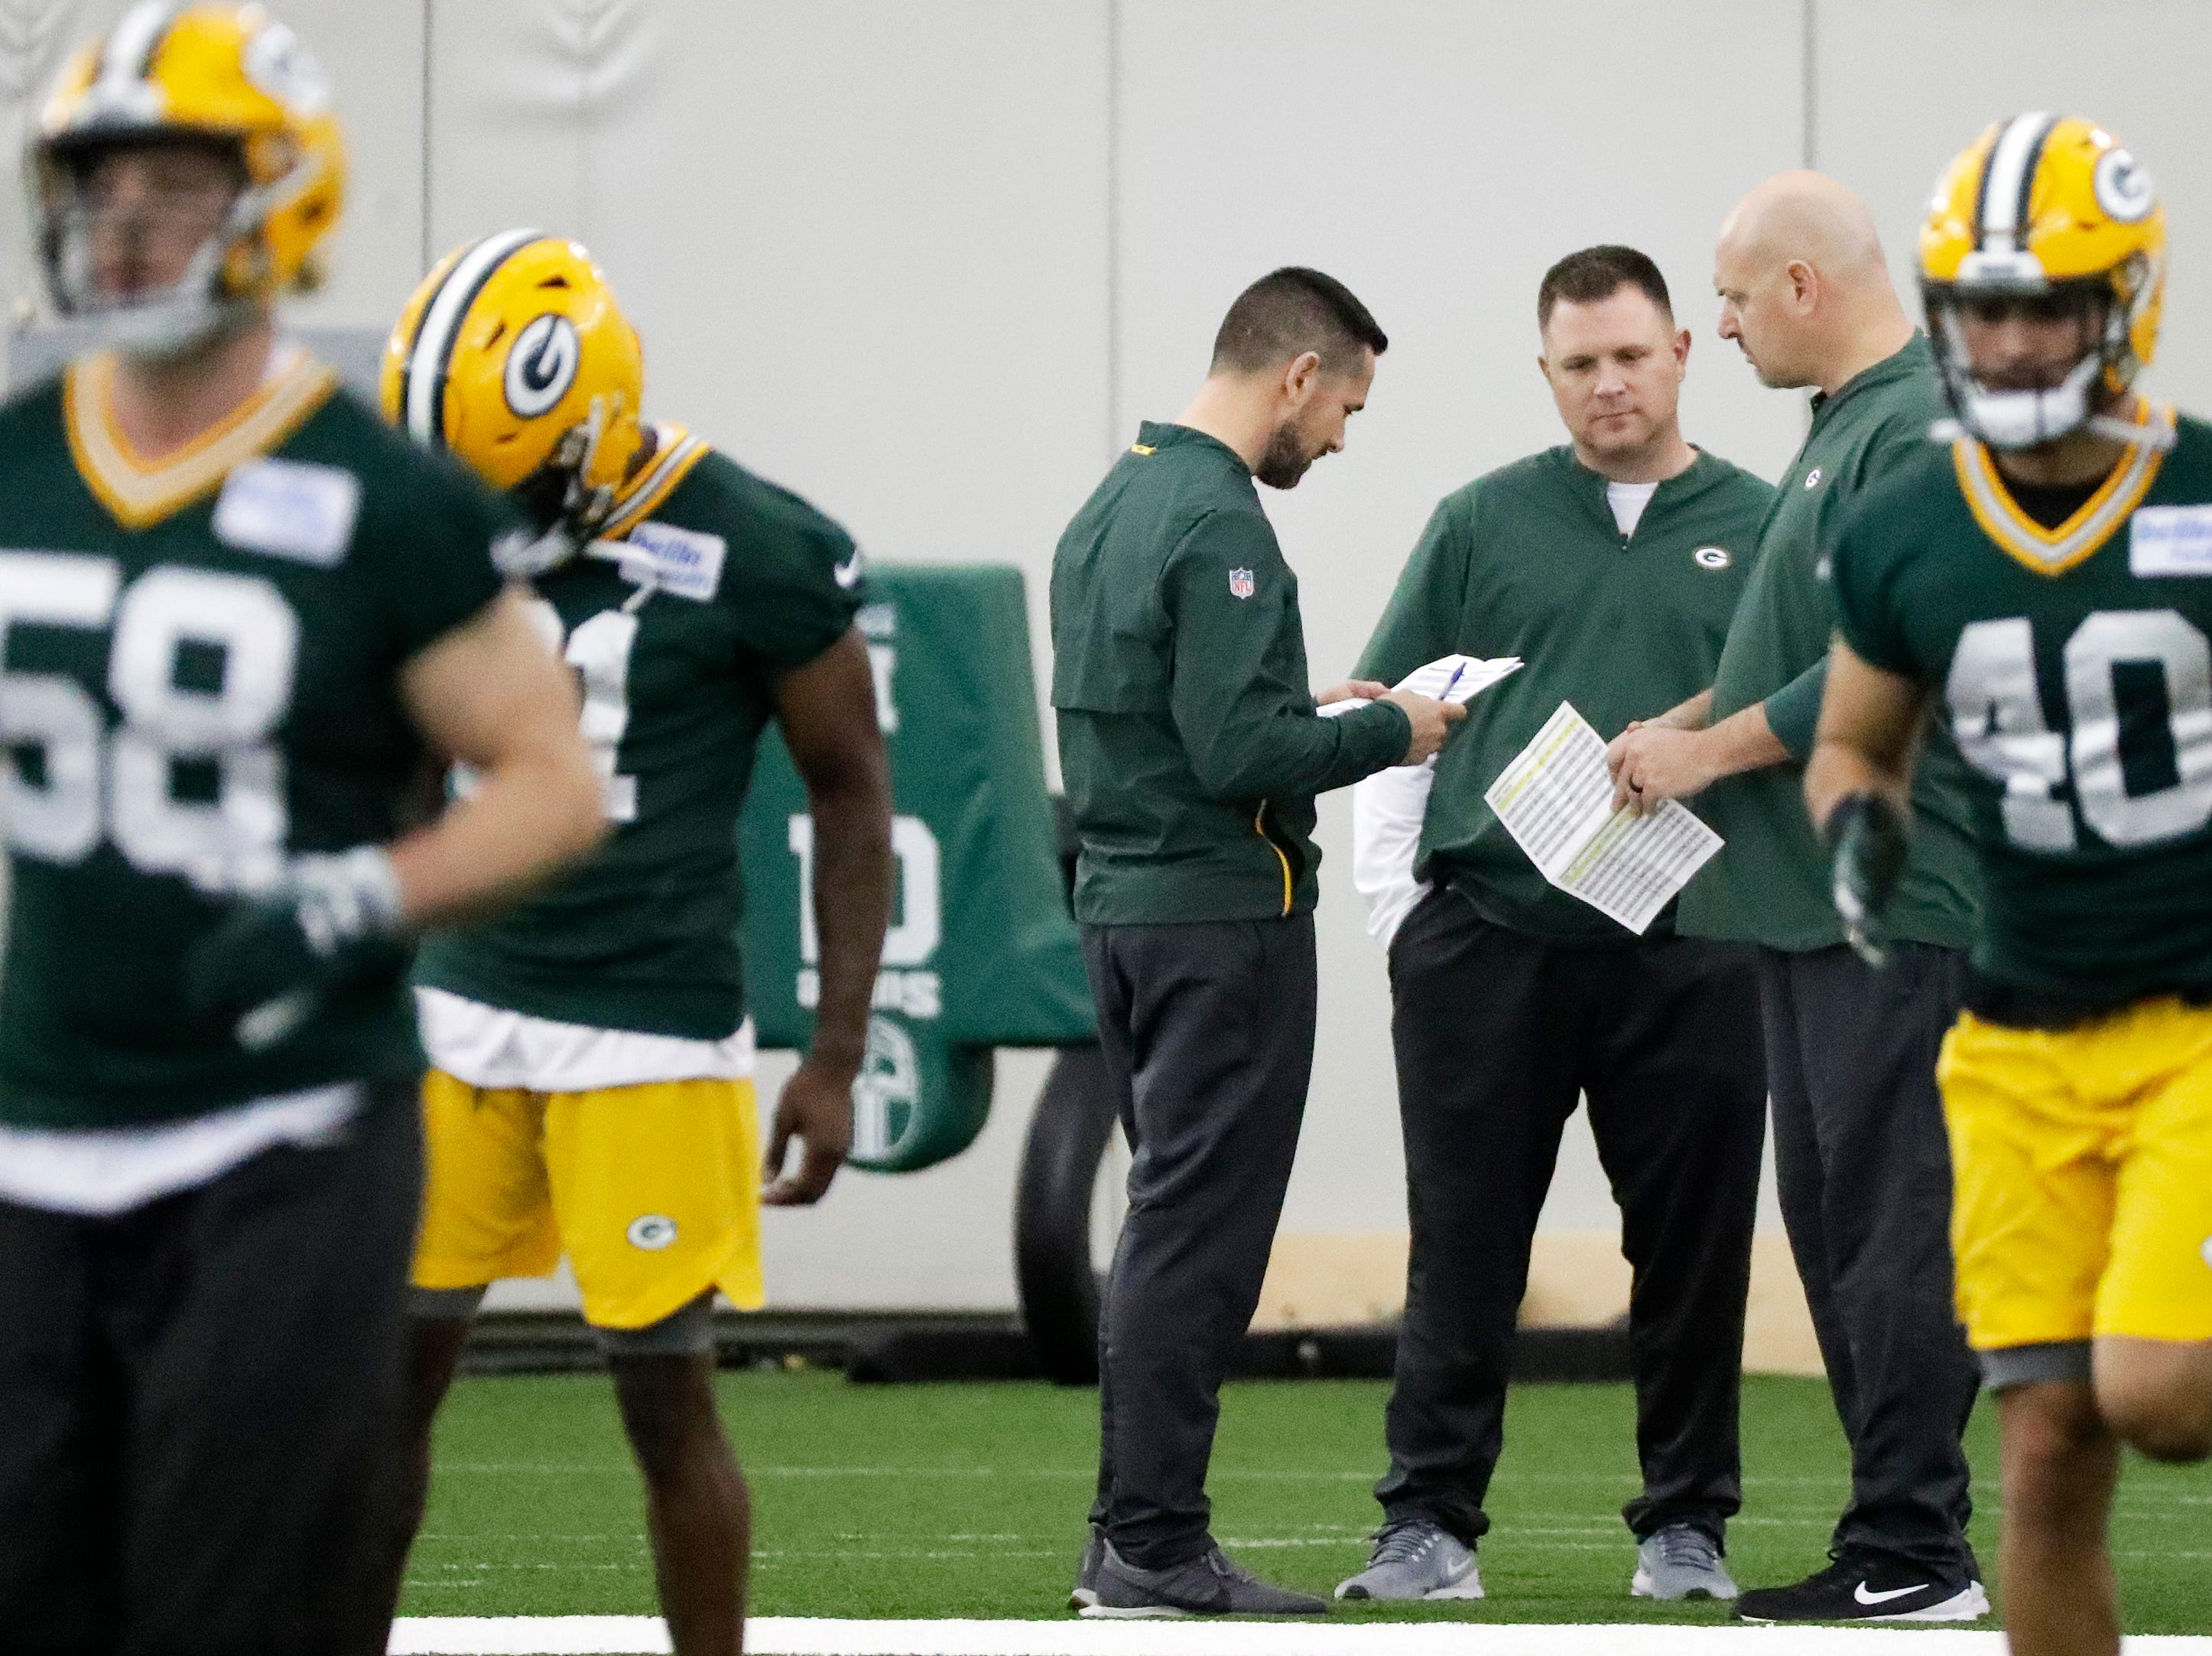 Green Bay Packers head coach Matt LaFleur, general manager Brian Gutekunst, and defensive coordinator Mike Pettine talk during a team practice at the Don Hutson Center on Wednesday, April 24, 2019 in Ashwaubenon, Wis.